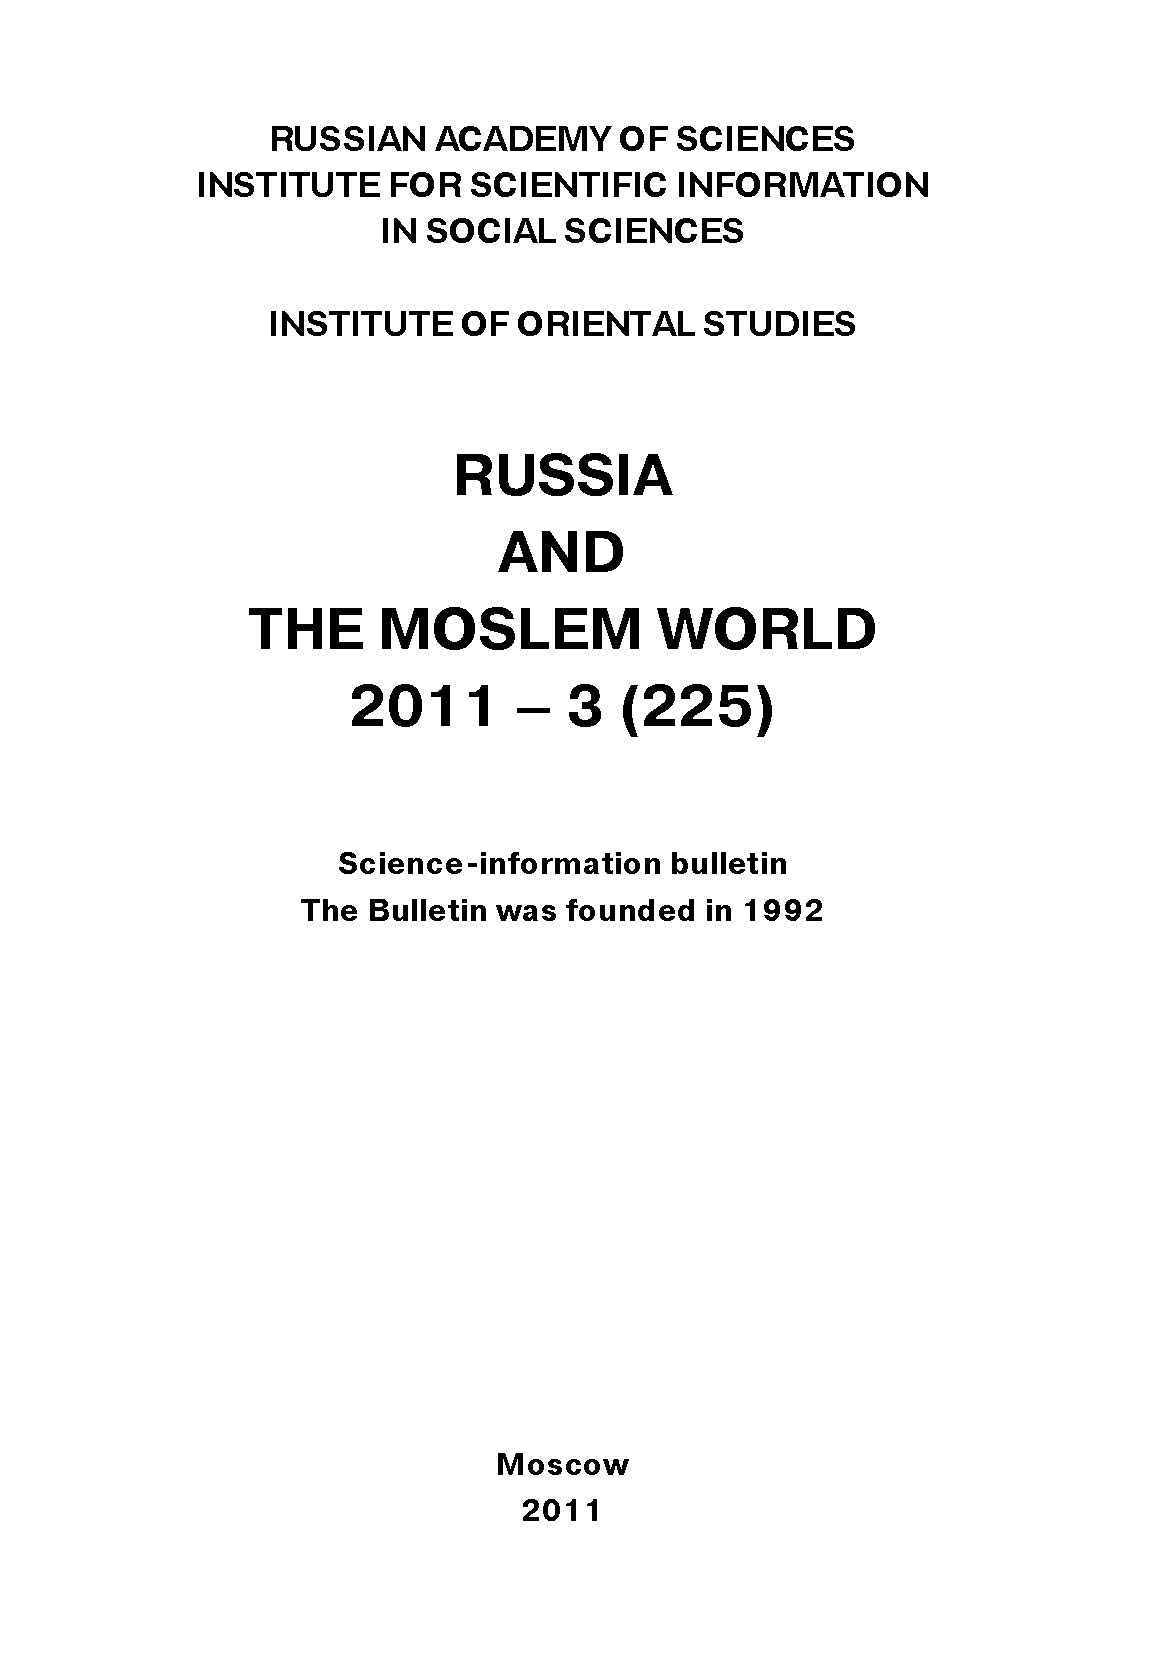 Сборник статей Russia and the Moslem World № 03 / 2011 сборник статей russia and the moslem world 04 2011